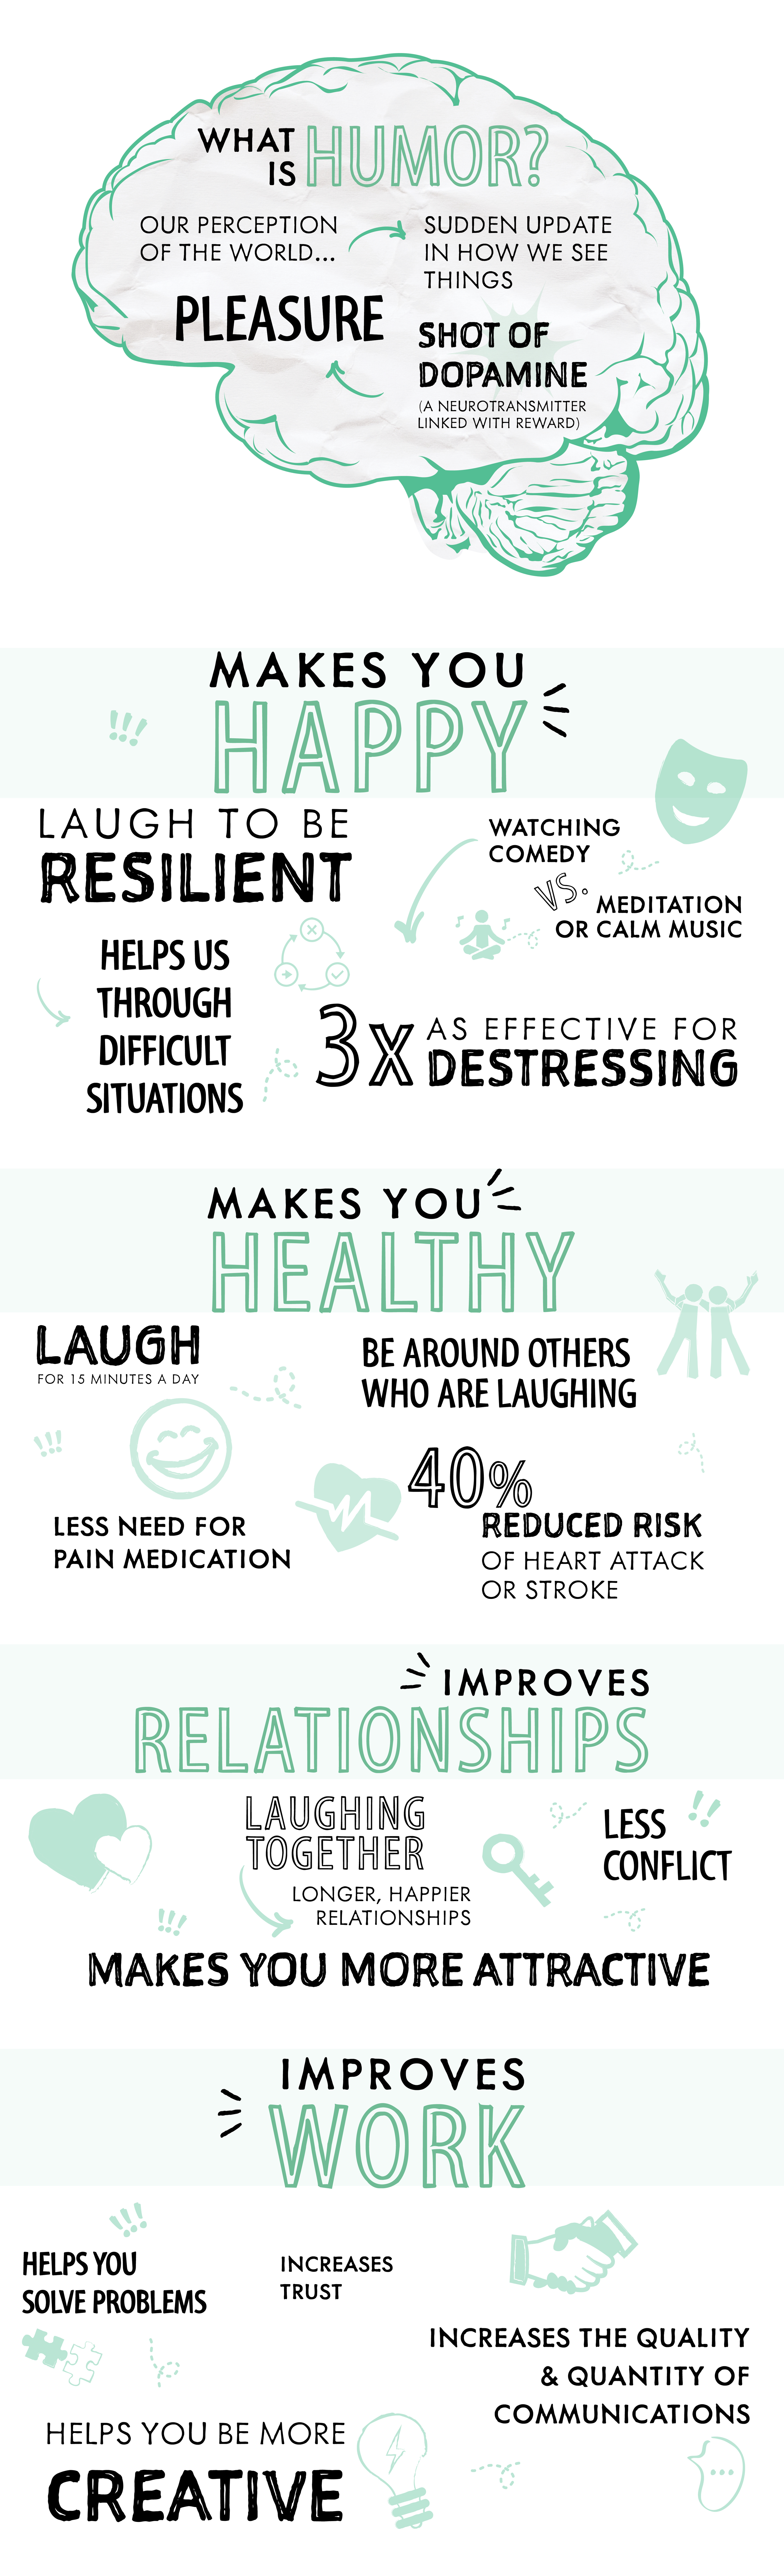 What is humor? Our perception of the world Sudden update in how we see things Shot of dopamine (A neurotransmitter linked with reward) Pleasure Makes you happy Laugh to be resilient Helps us through difficult situations Watching comedy vs. meditation or calm music 3x as effective for destressing Makes you healthy Laugh for 15 minutes a day Be around others who are laughing Less need for pain medication 40% reduced risk of heart attack or stroke Improves work Increases trust Helps you solve problems Increases the quality & quantity of communications Helps you be more creative Improves relationships Laughing together ® Longer, happier relationships Less conflict Makes you more attractive